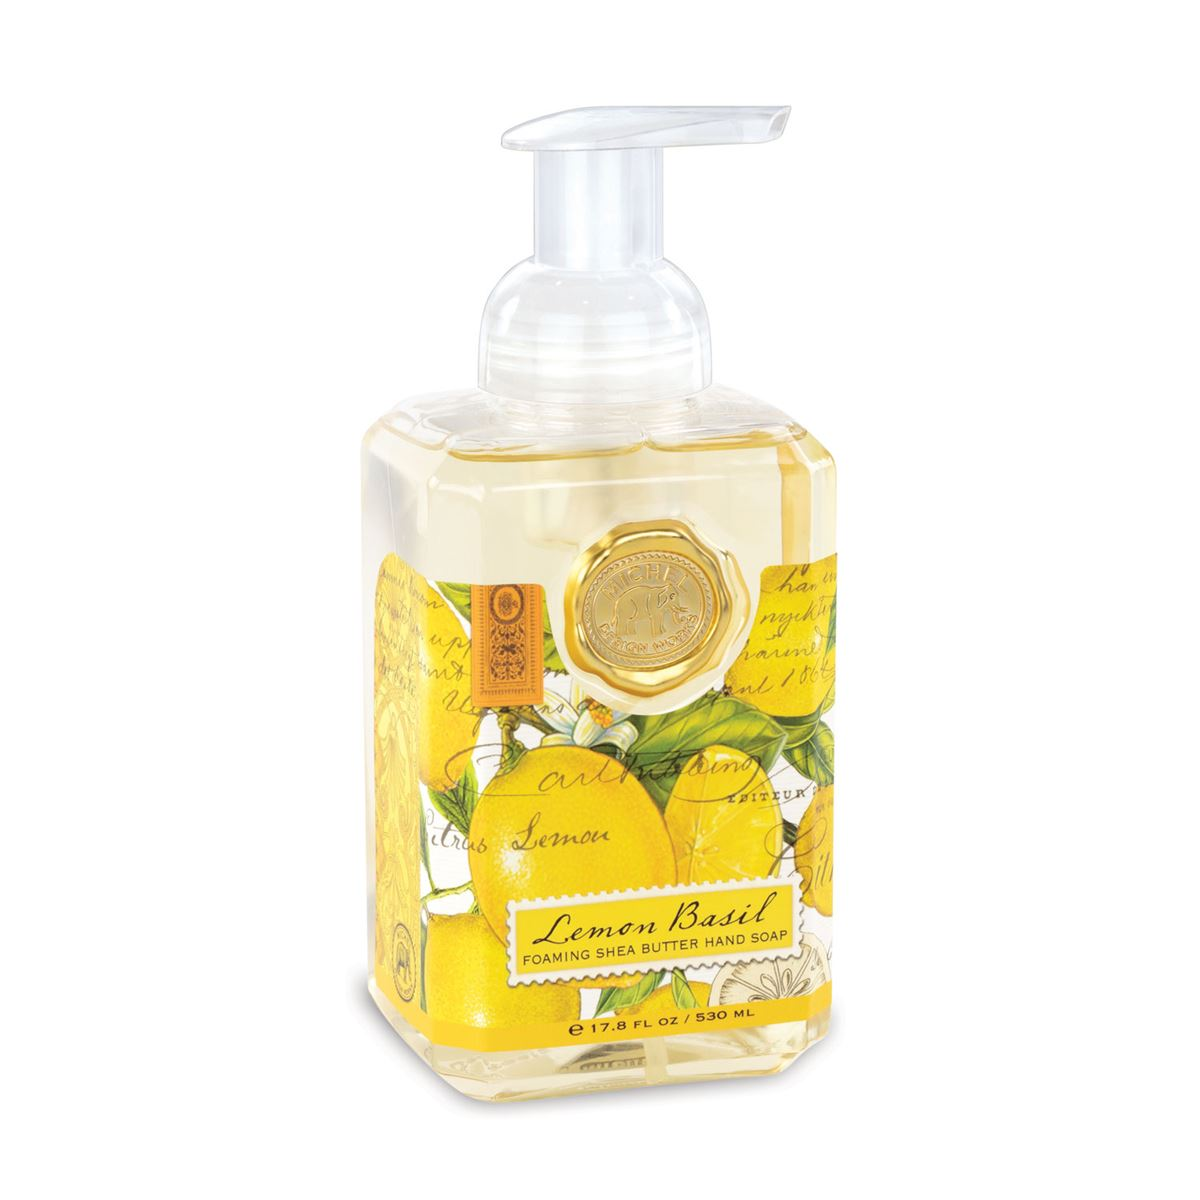 What could be better than the most-loved Lemon Basil, with its fresh citrus scents of lemon and mandarin enhanced with green basil leaf? This generously sized foaming hand soap contains luxurious shea butter and aloe vera for gentle cleansing and moisturizing.